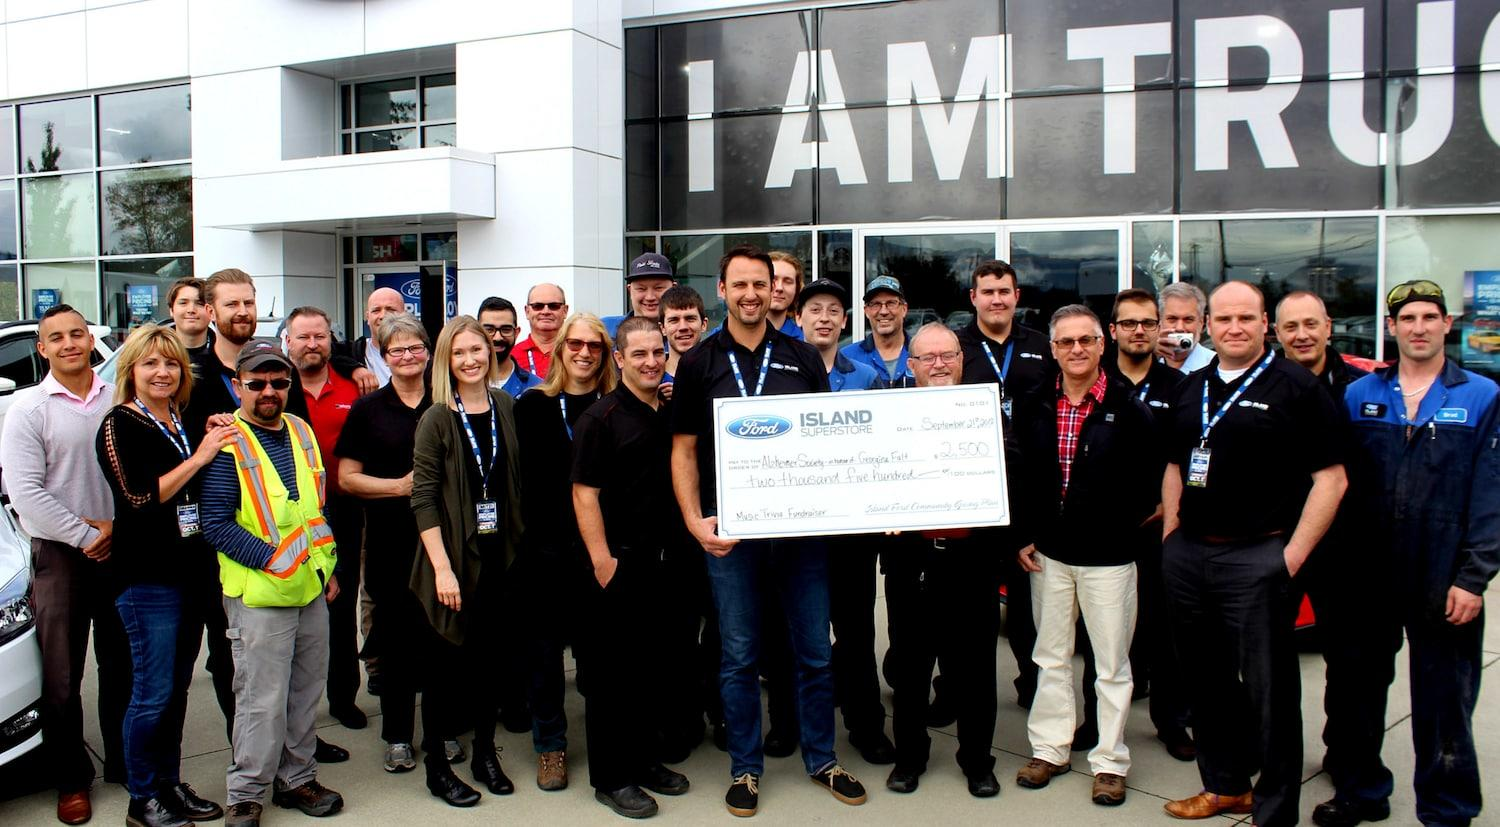 Island Ford donating to the Alzheimer's society Georgina Fault Music Trivia fundraiser